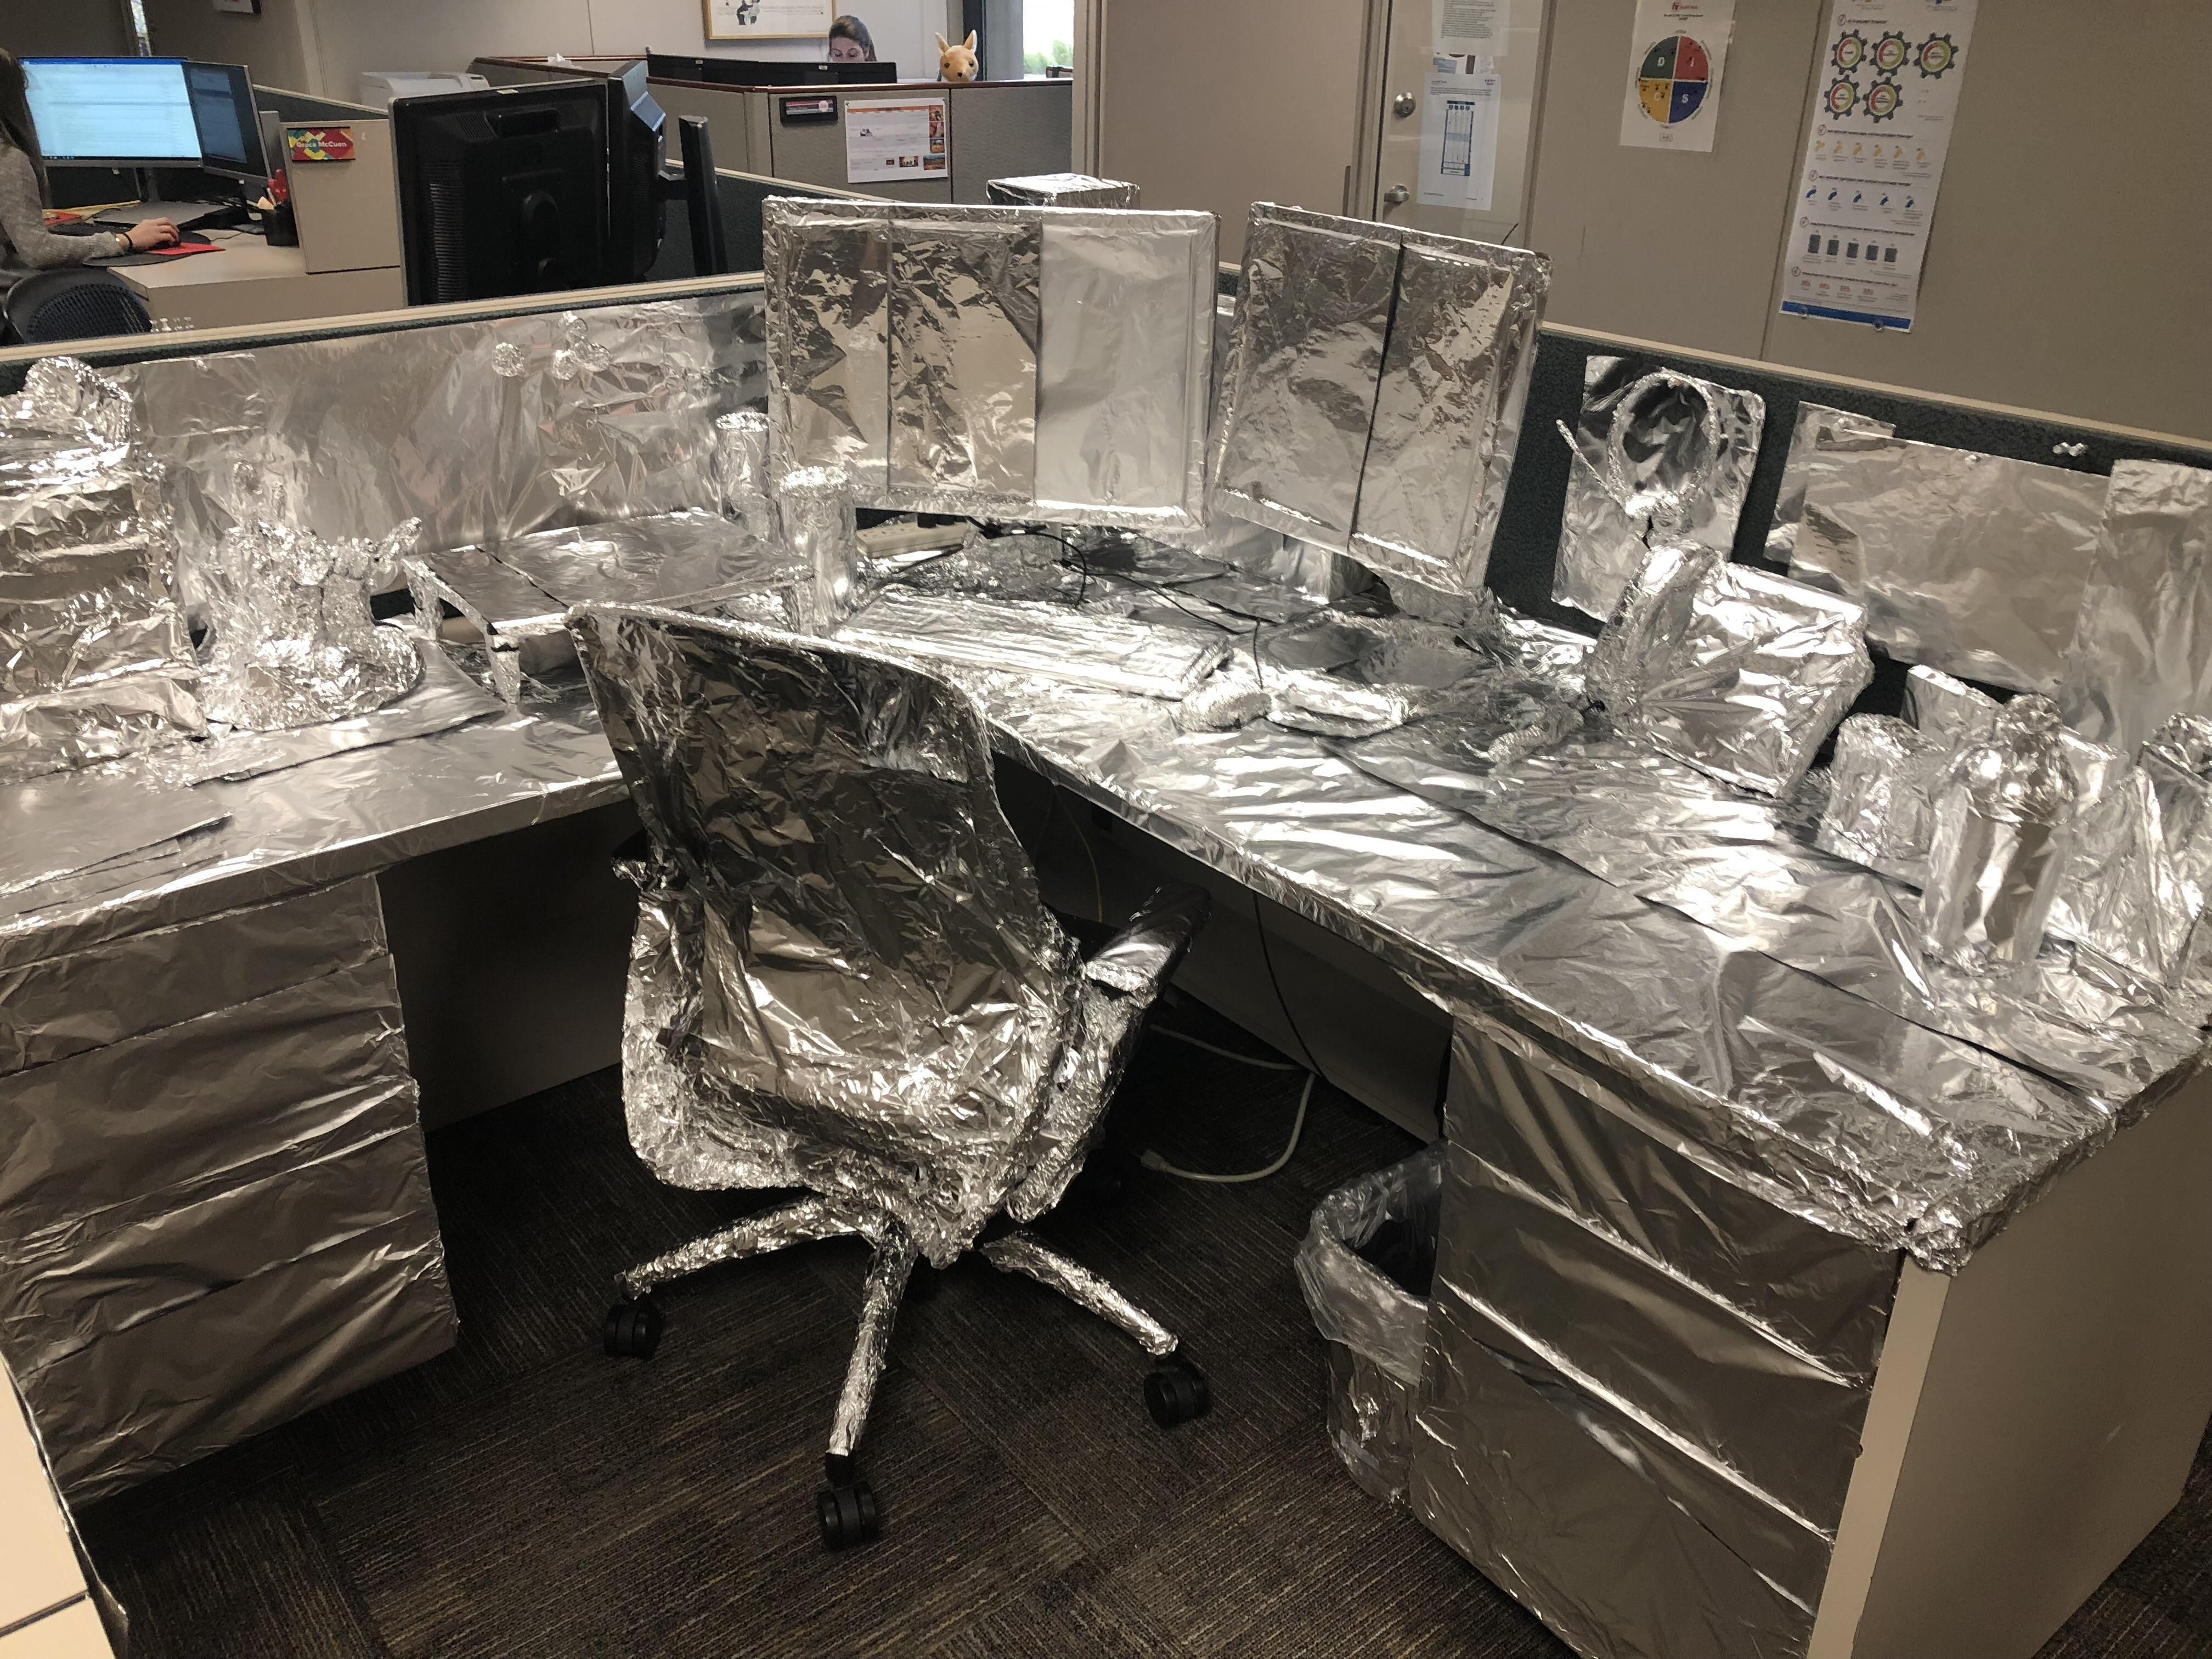 Came back from a long vacation to literally every single thing on my desk wrapped in tin foil